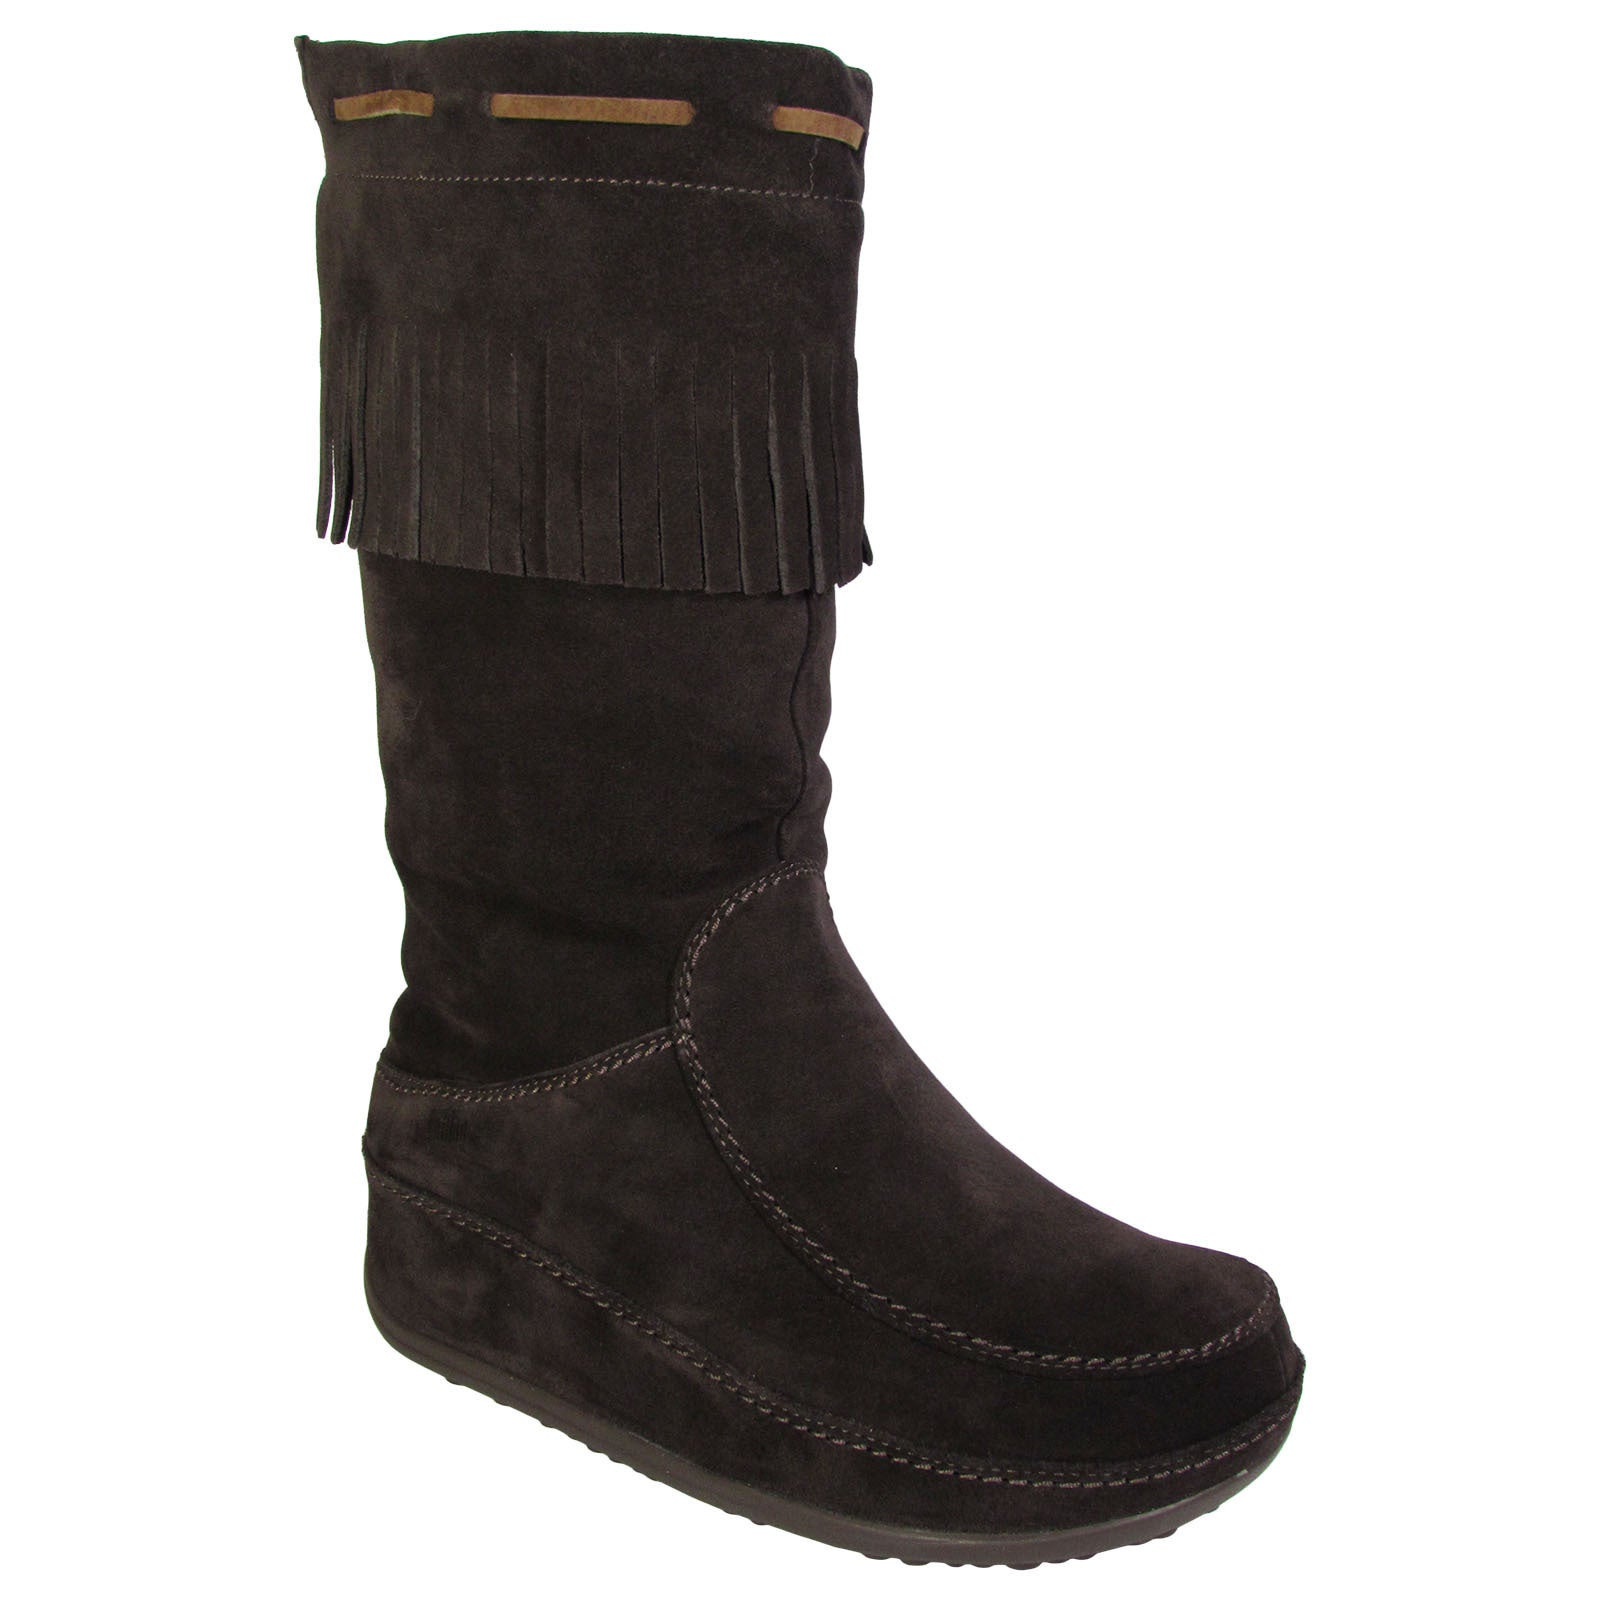 a0aa4fd63c8fd Shop Fitflop Womens Superfringe Mukluk Suede Boots - Free Shipping Today -  Overstock - 11079207